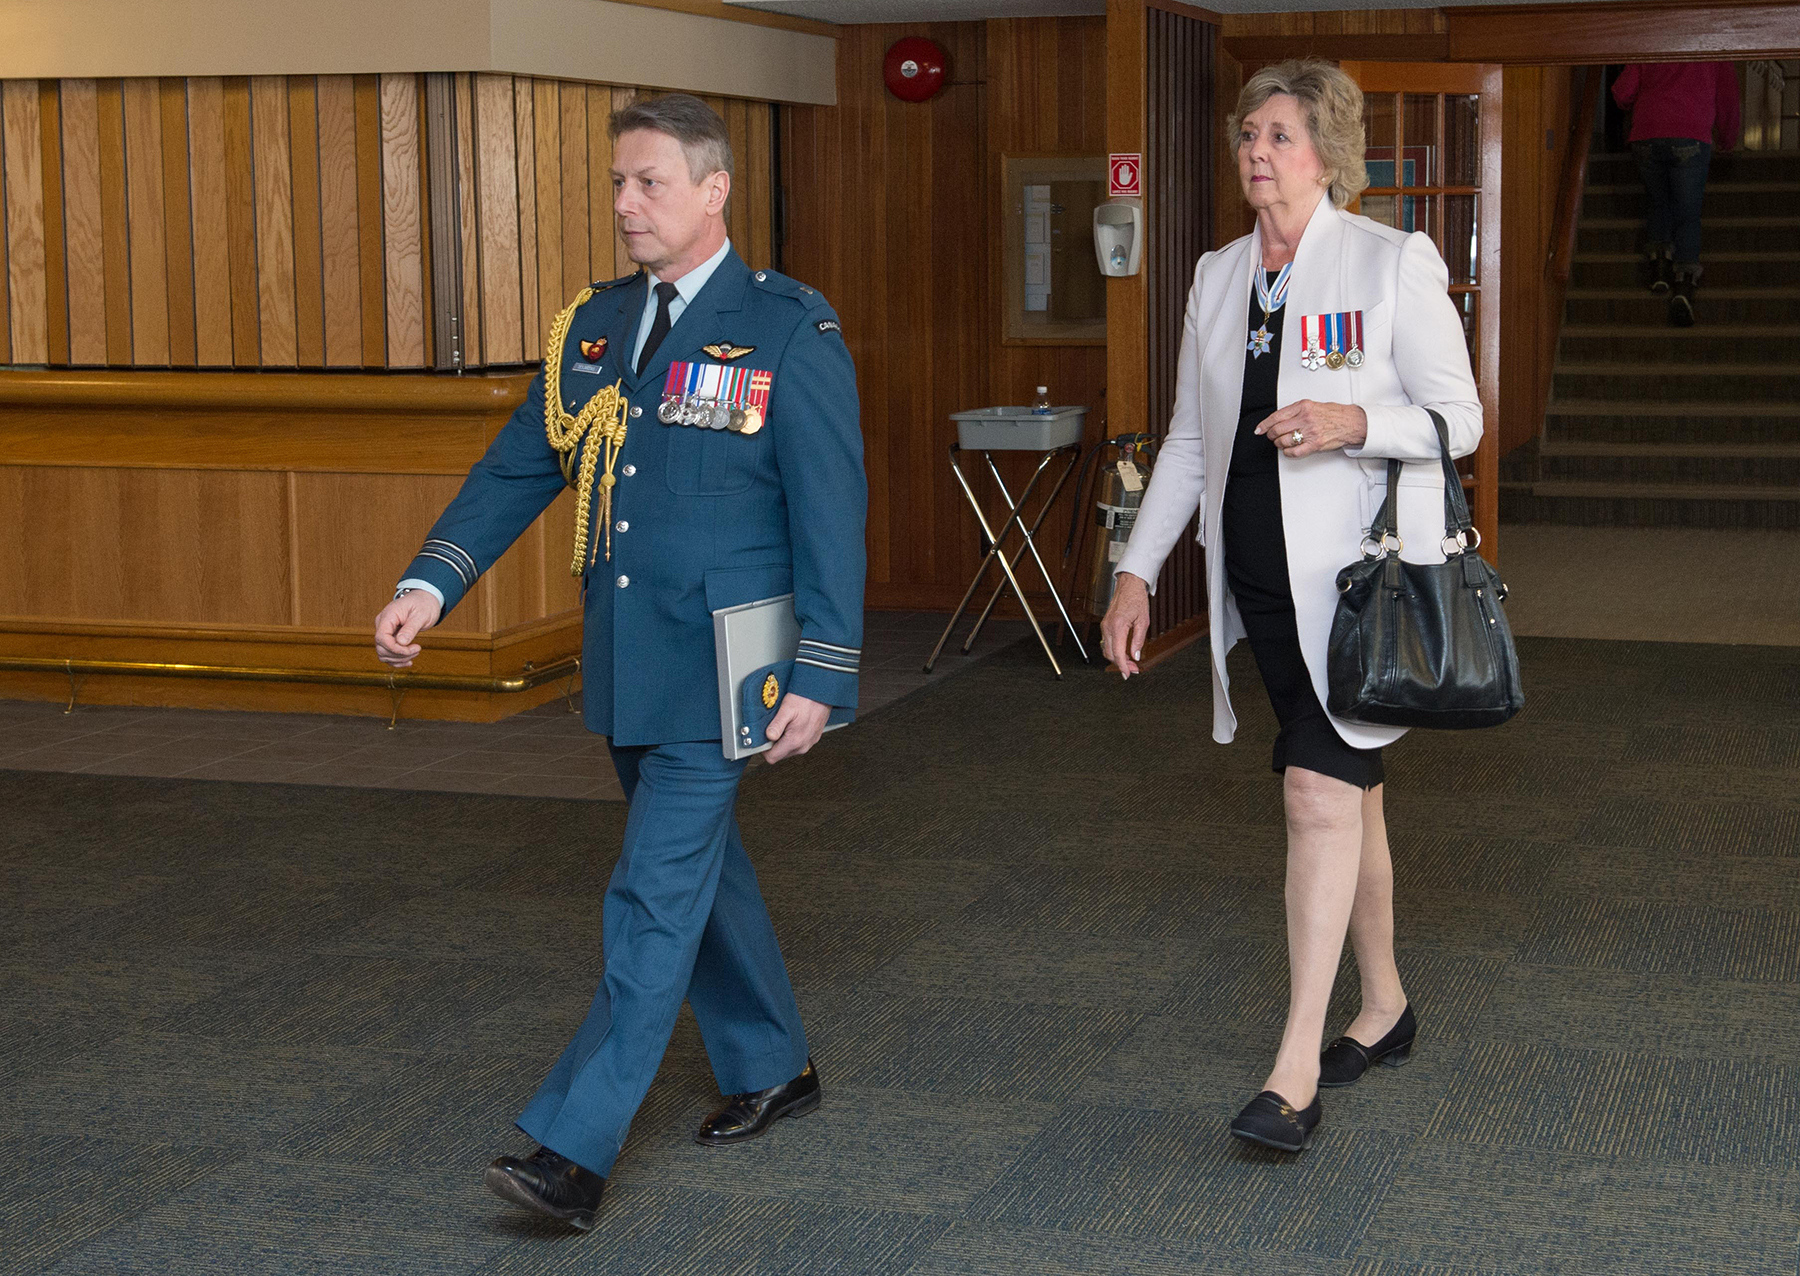 Lieutenant Governor of Manitoba Janice Filmon is piped in during the 17 Wing Winnipeg, Manitoba, Honorary Colonel change of appointment ceremony held on March 21, 2018. PHOTO: Corporal Darryl Hepner, WG2018-0120-003